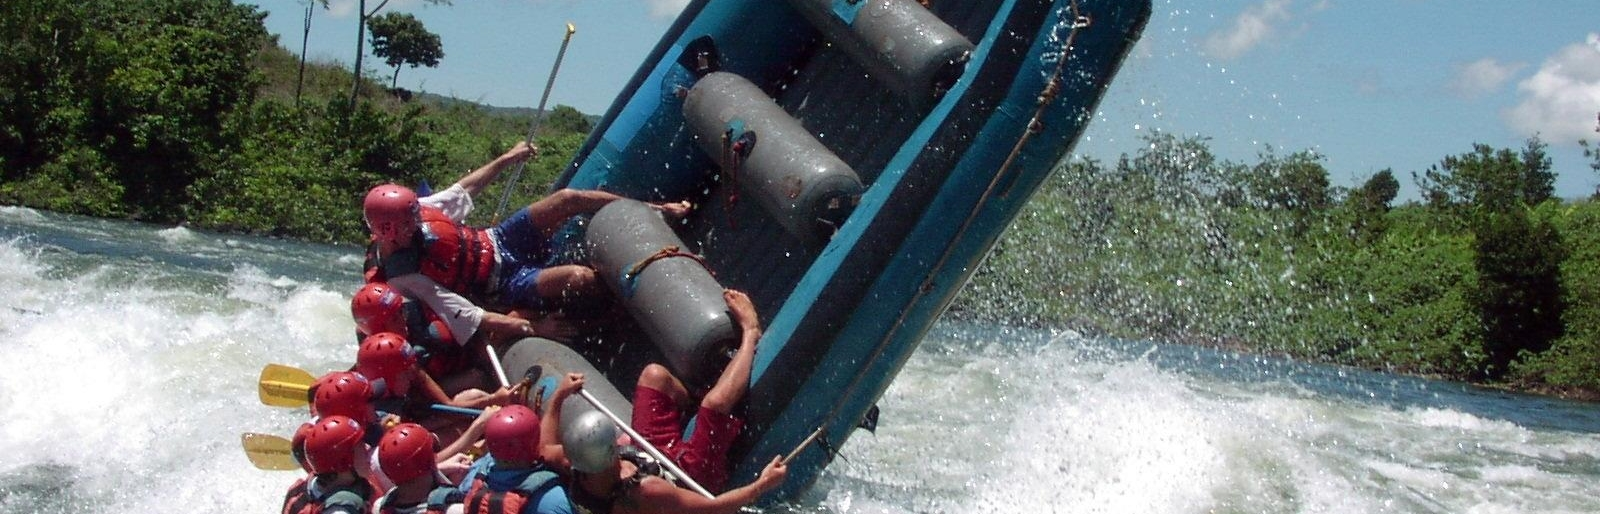 Extreme Adrenaline do the White Water Rafting on the River Nile - Uganda